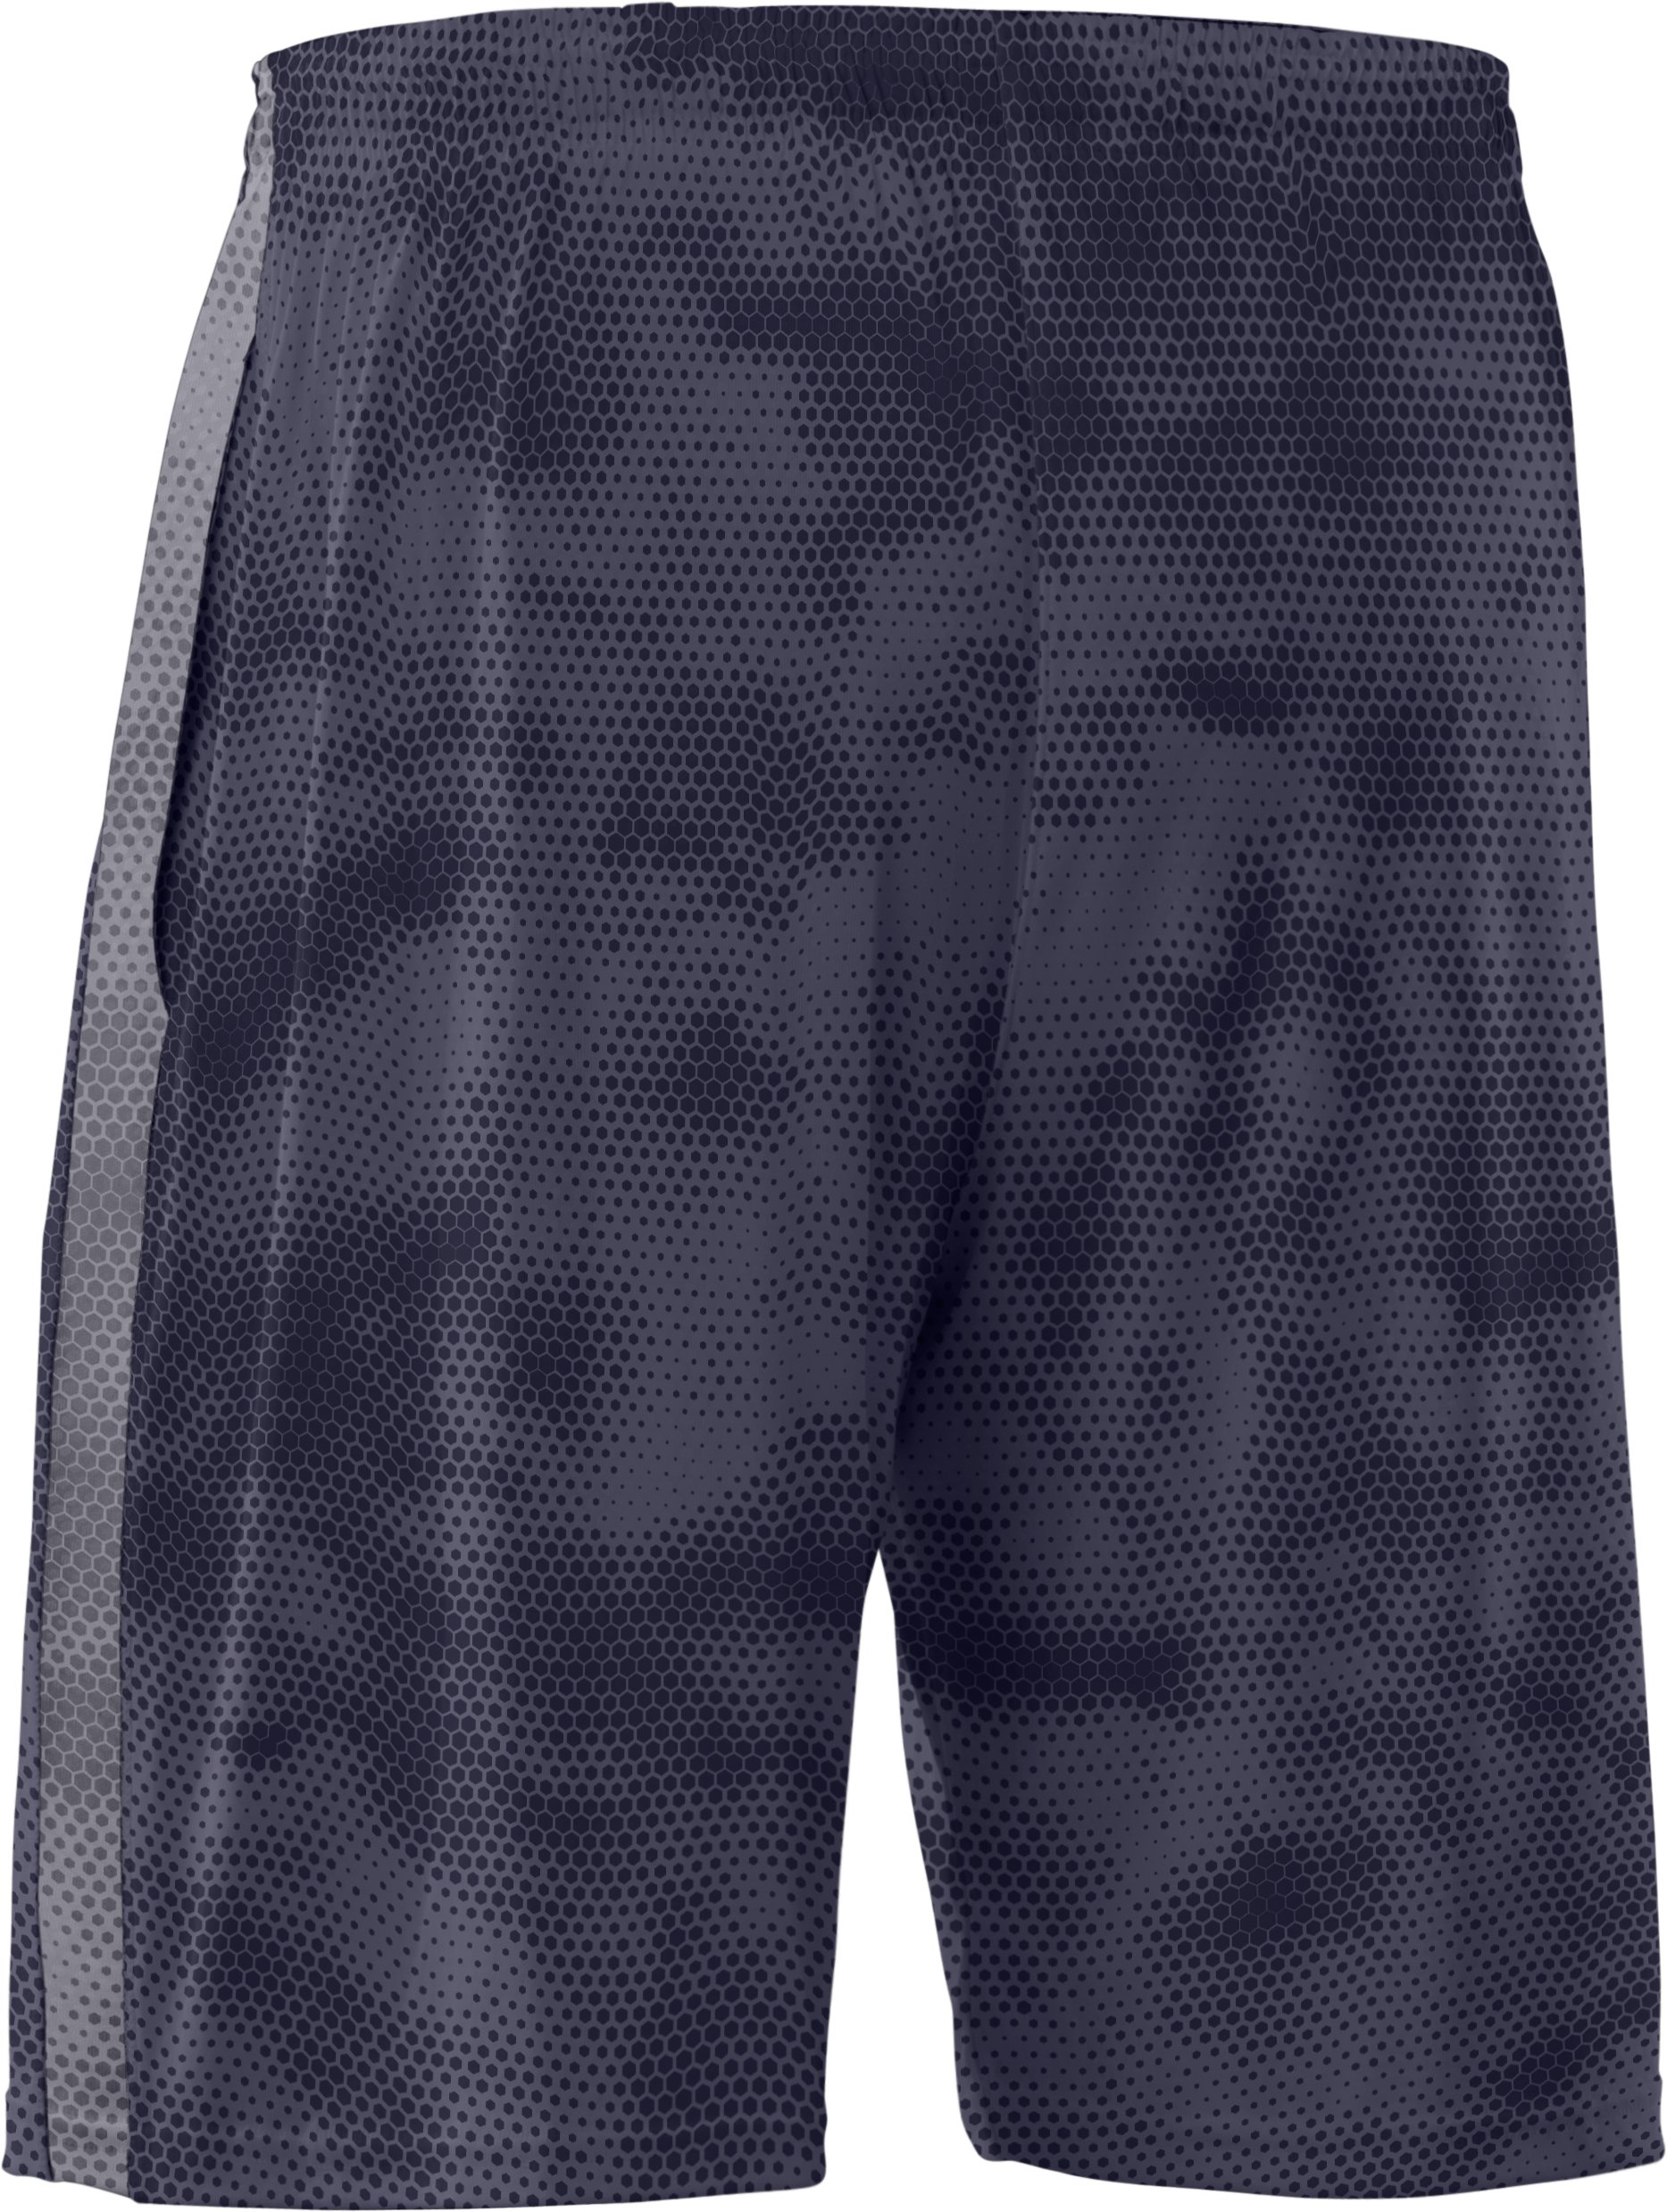 Men's UA Micro Printed Shorts, Midnight Navy